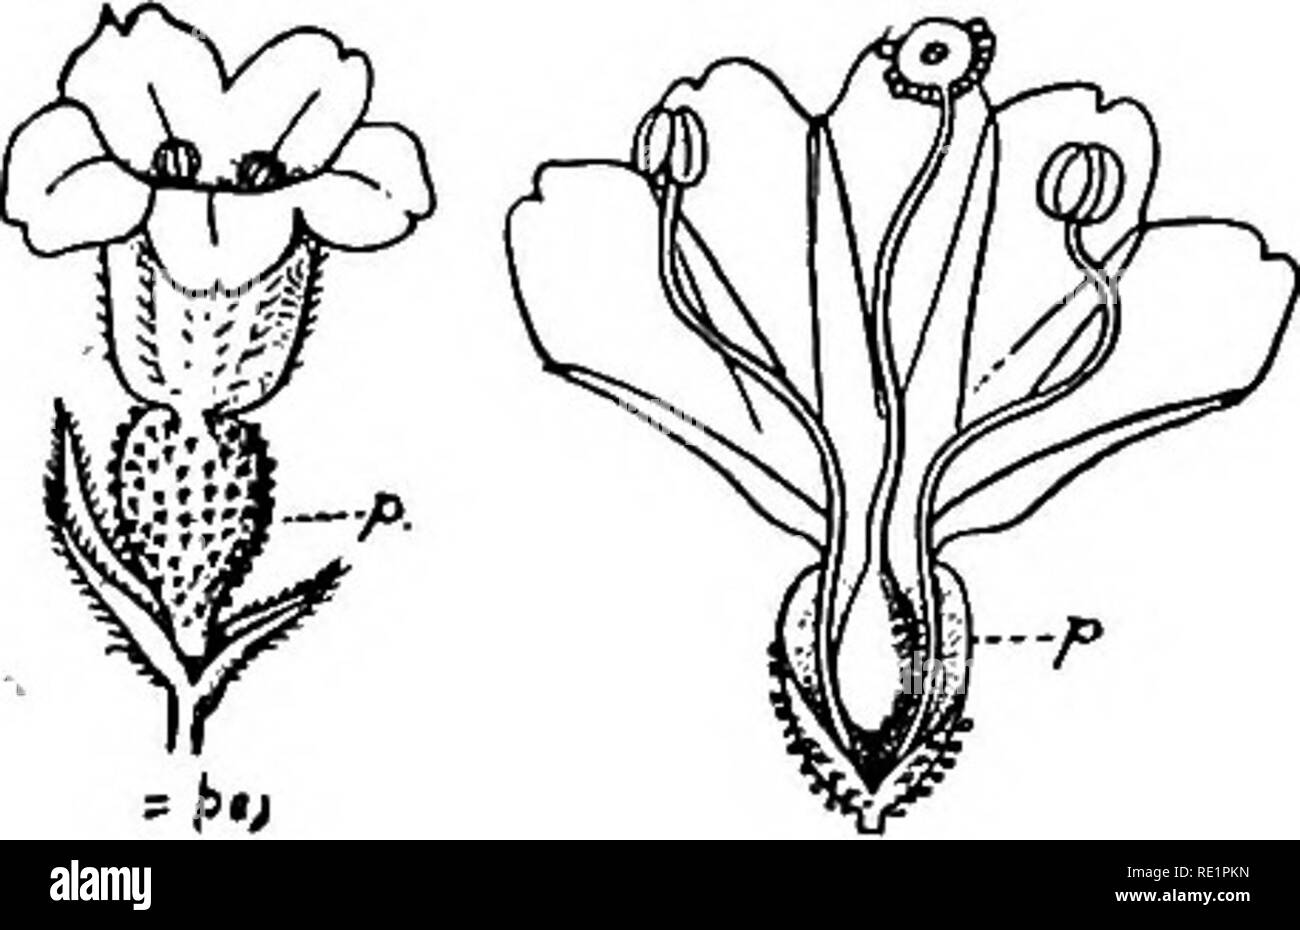 . A manual of Indian botany. Botany. 258 CLASSIFICATION. claw, now common in the Gangetic plains and else- where in India. It has capsules with 2 incurved beaks like the claws of a tiger (see fig. 128). By means of these beaks the capsules become attached to the hair or wool of wild animals and are thus dis- persed. Sub-class 4. iNCOMPLETyE Nat. Order i. Nyctaginacece.—Herbs, shrubs, or trees. Leaves usually opposite, entire. Flowers her- maphrodite, regular, often involucrate. Perianth usu- ally petaloid, connate, in- flated at the base, enclosing the ovary. Stamens 8 to 30, hypogynous. Carpe - Stock Image